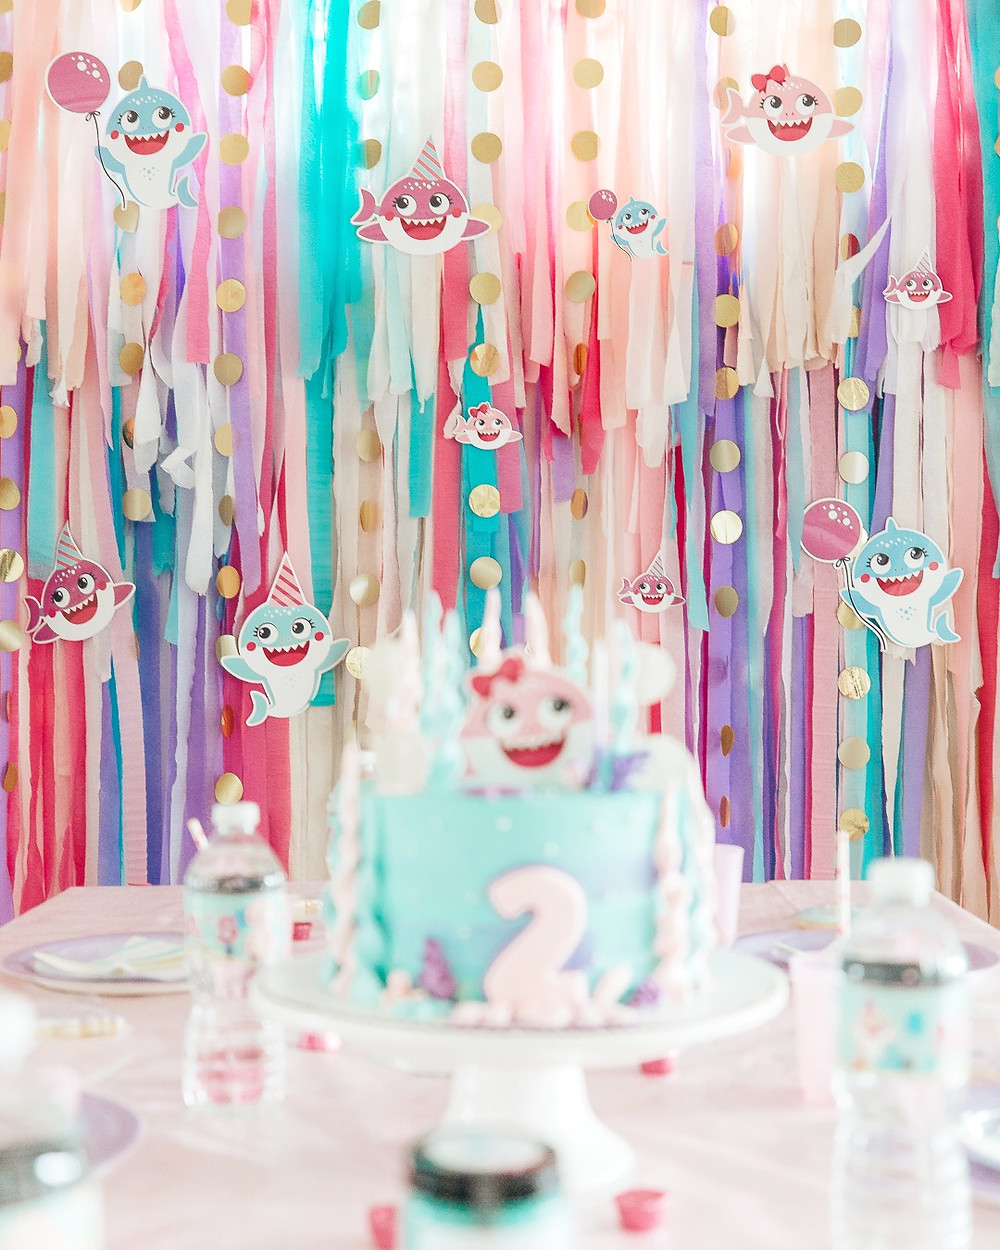 A two year old little girl Baby Shark birthday party with a streamer backdrop, baby shark cake, baby shark cookies, floating balloons, home-made play dough party favours all done in pink teal purple and white party decor #partyideas #babysharkparty #babysharktablesettings #babysharkpartydecorations